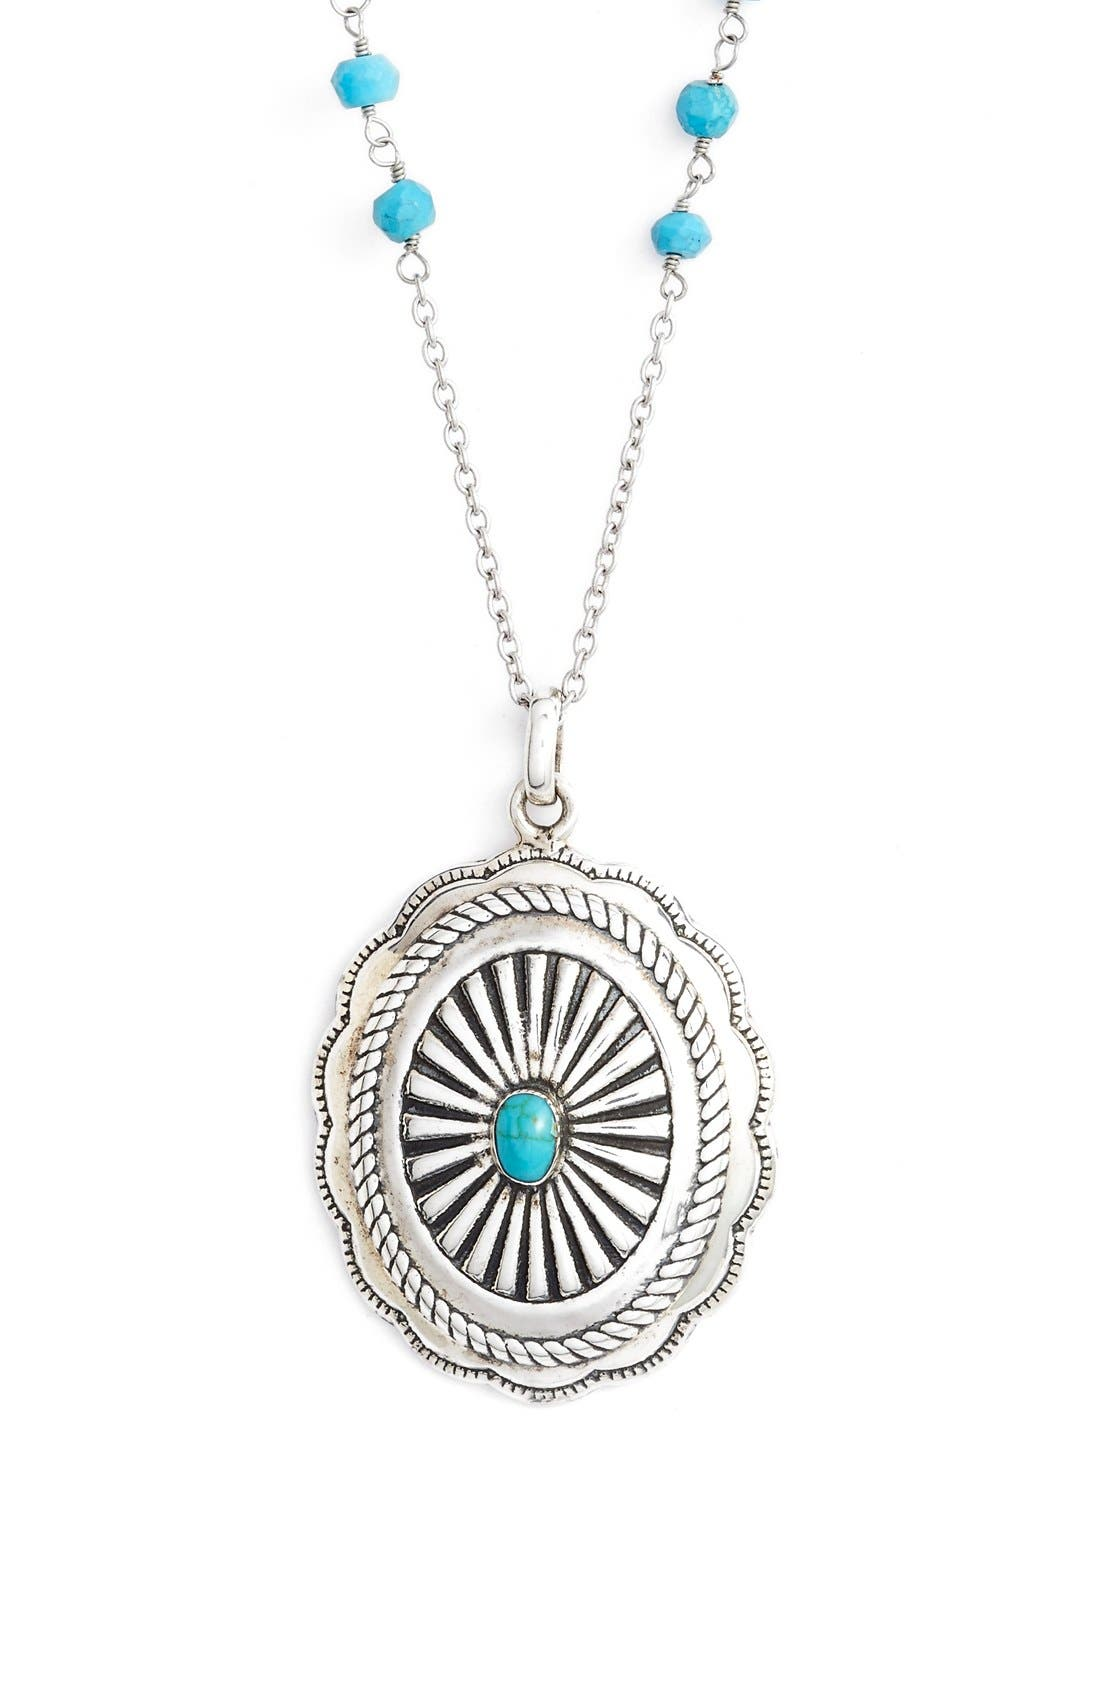 Alternate Image 1 Selected - Argento Vivo 'Southwest' Turquoise Scalloped Pendant Necklace